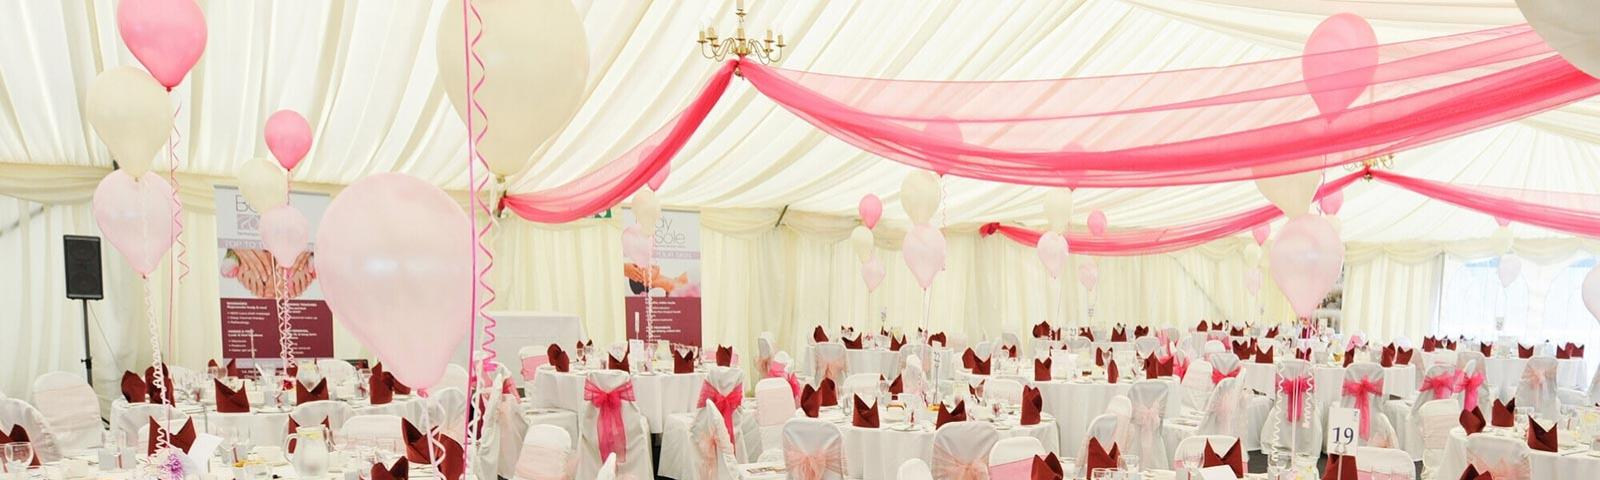 A panoramic view inside the beautifully decorated Paddock Marquee at Fontwell Park Racecourse.